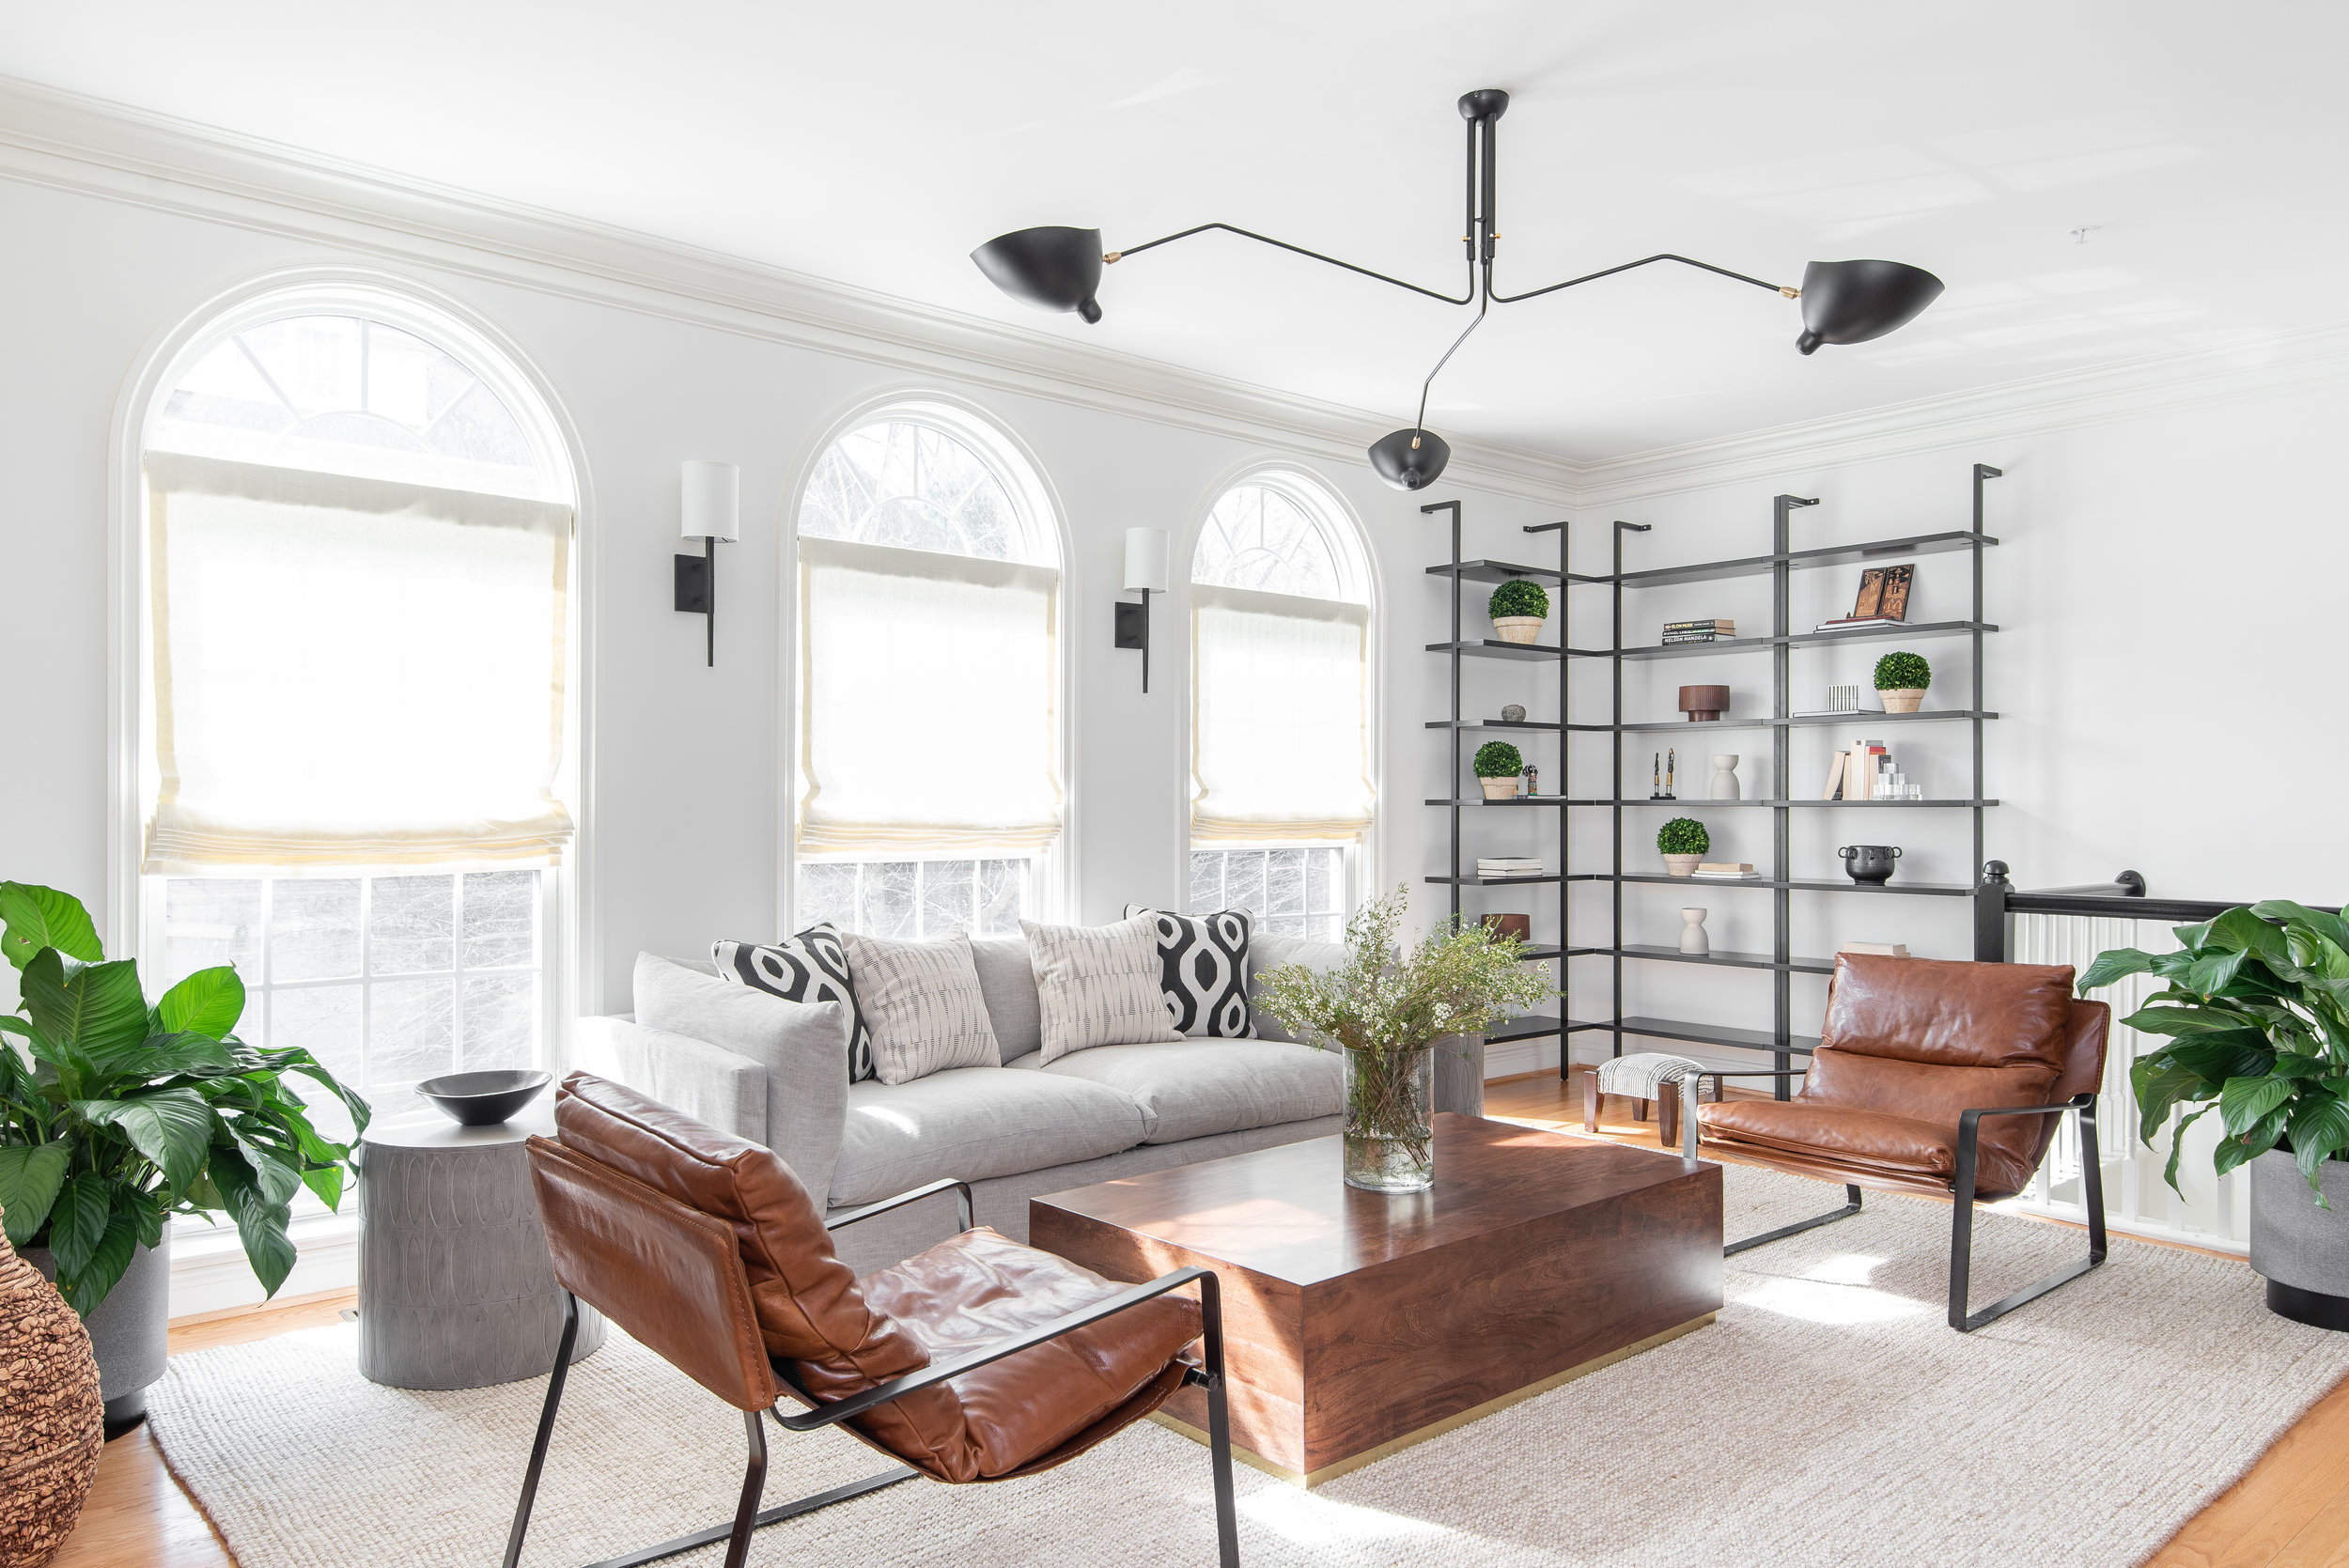 living-room-decoration-bethesda-md-washington-dc-dmv-homes-wood-table-gray-sofa-family-room-kid-friendly-mid-century-modern-chandelier-black-and-white-design-bookshelves-wall-splendor-styling-mariella-cruzado-designer-dmv.jpg